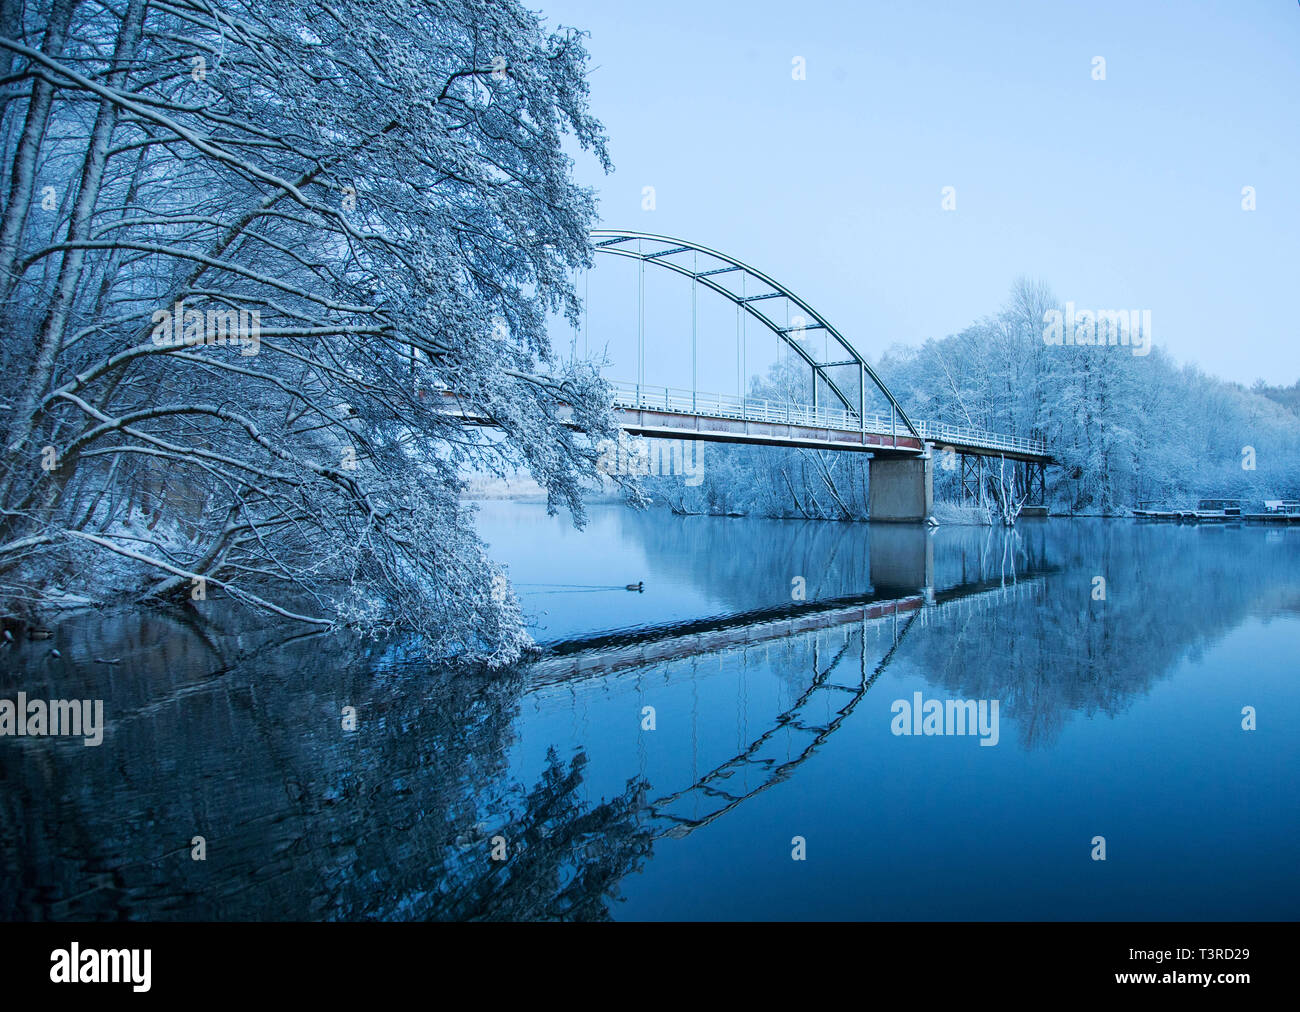 Chilly weather with snow and frost on the trees a cold winter day by a bridge over water. - Stock Image